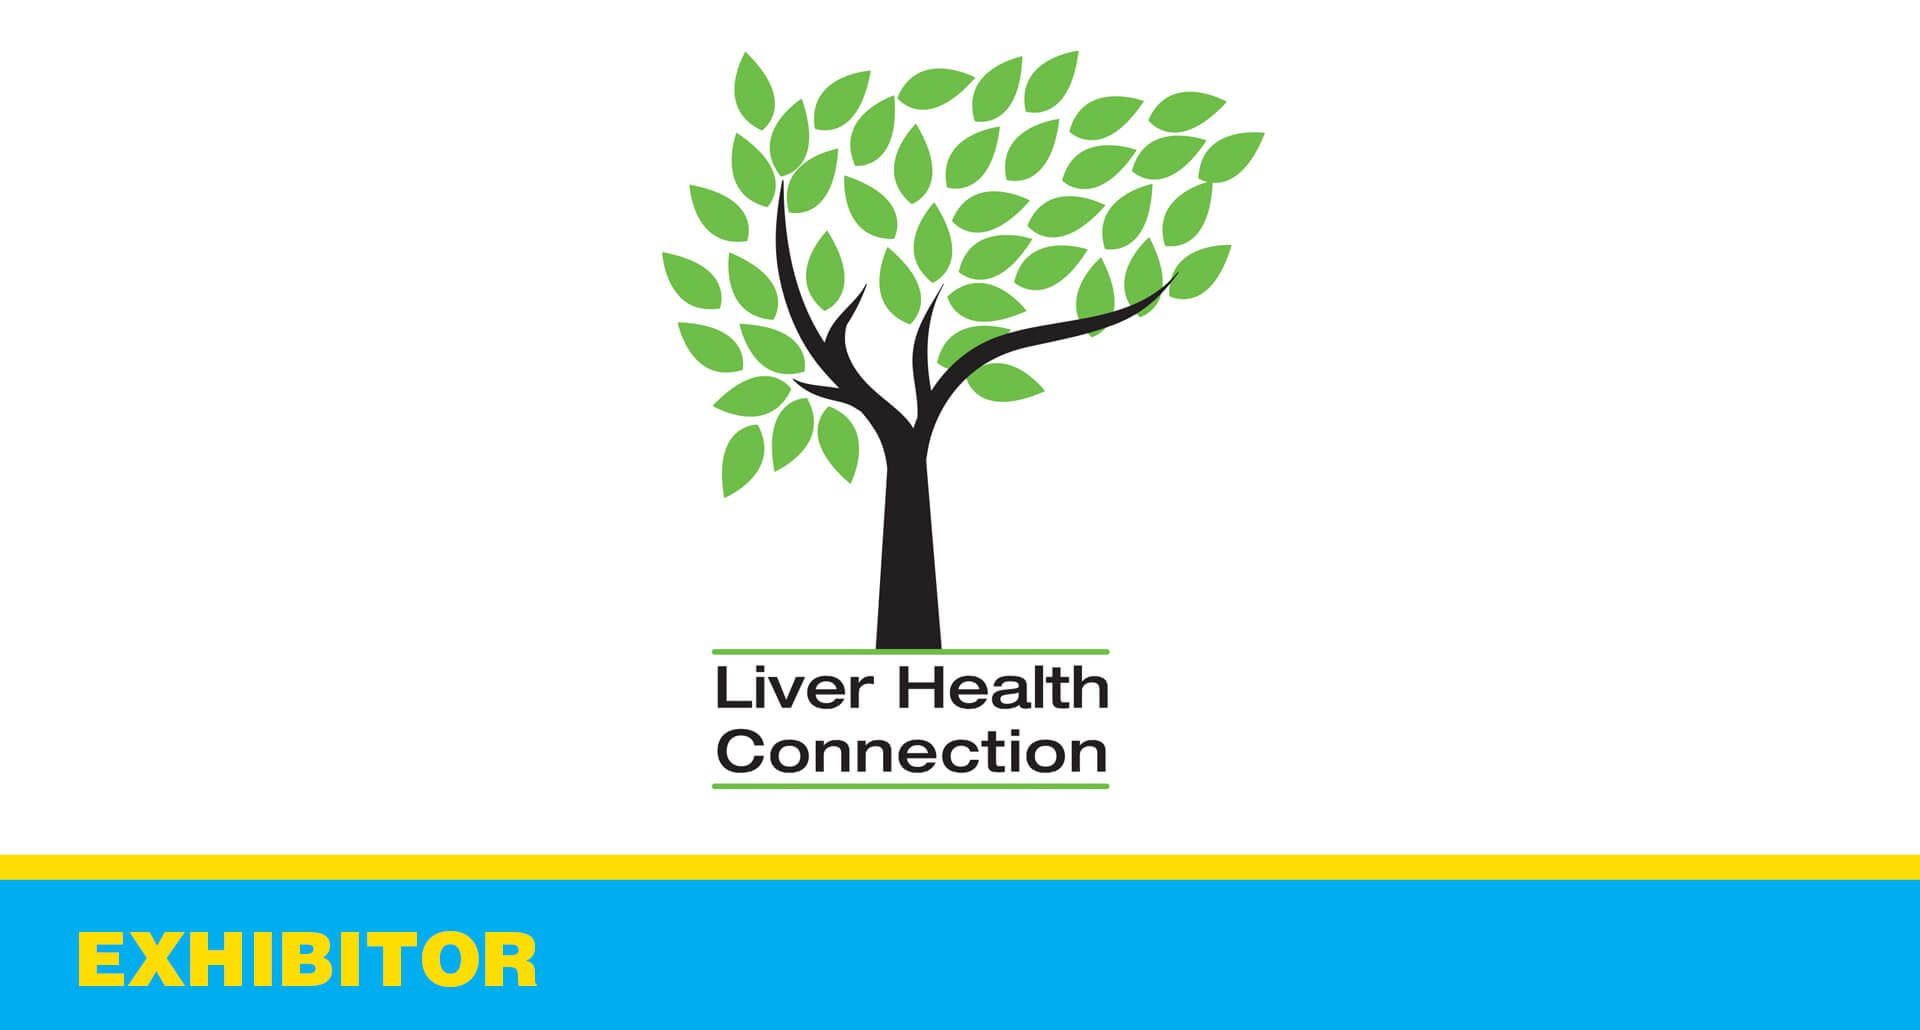 Liver Health Network